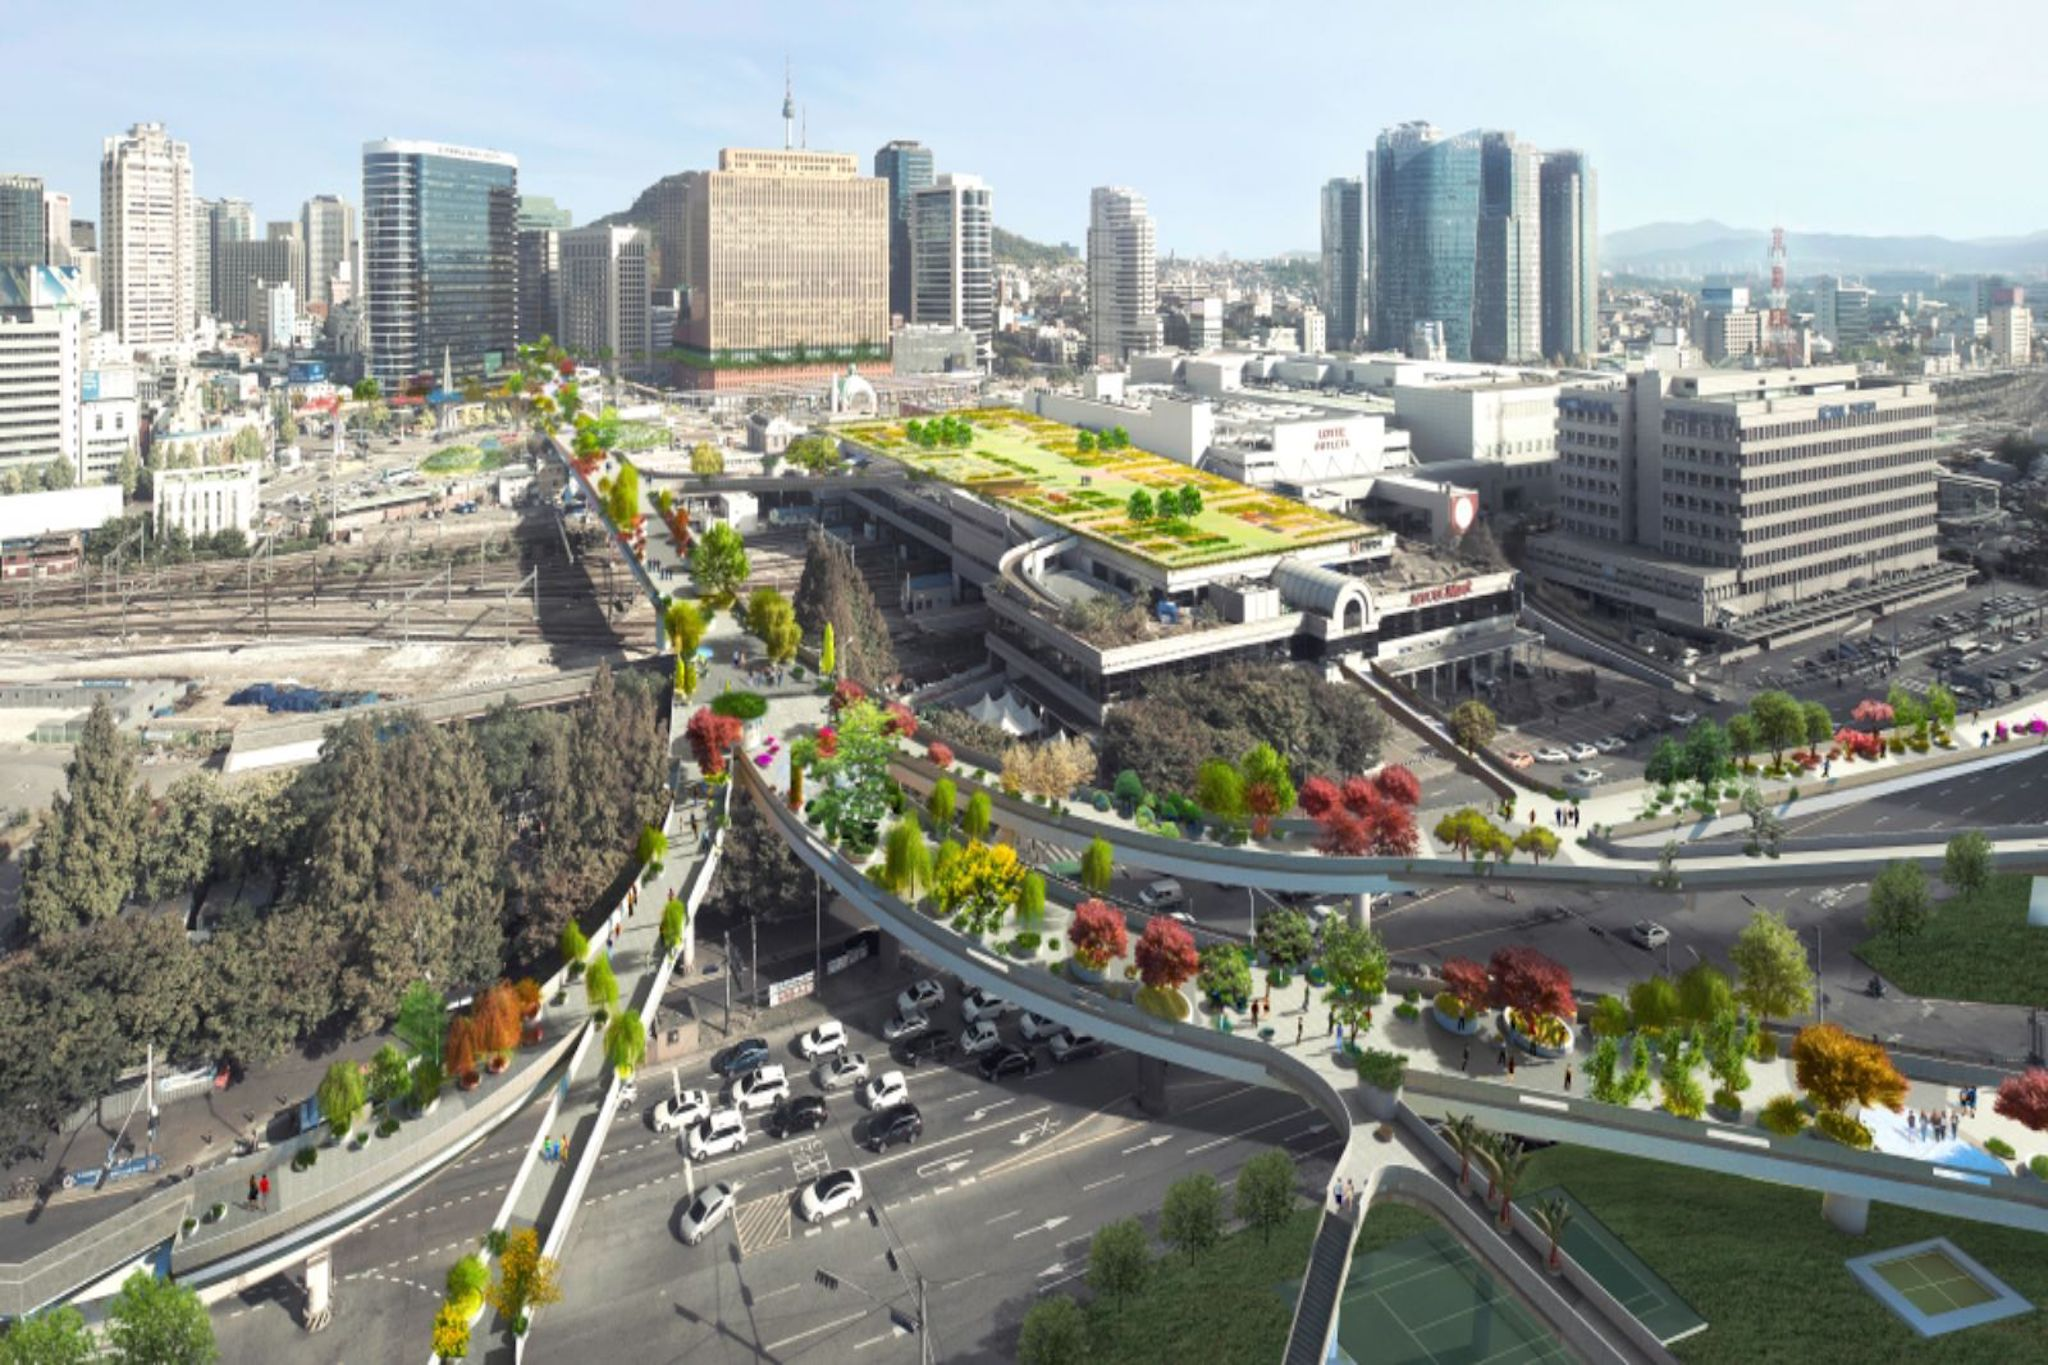 Car With Road >> 5 Rails-to-Trails and Elevated Urban Walkways Around the World